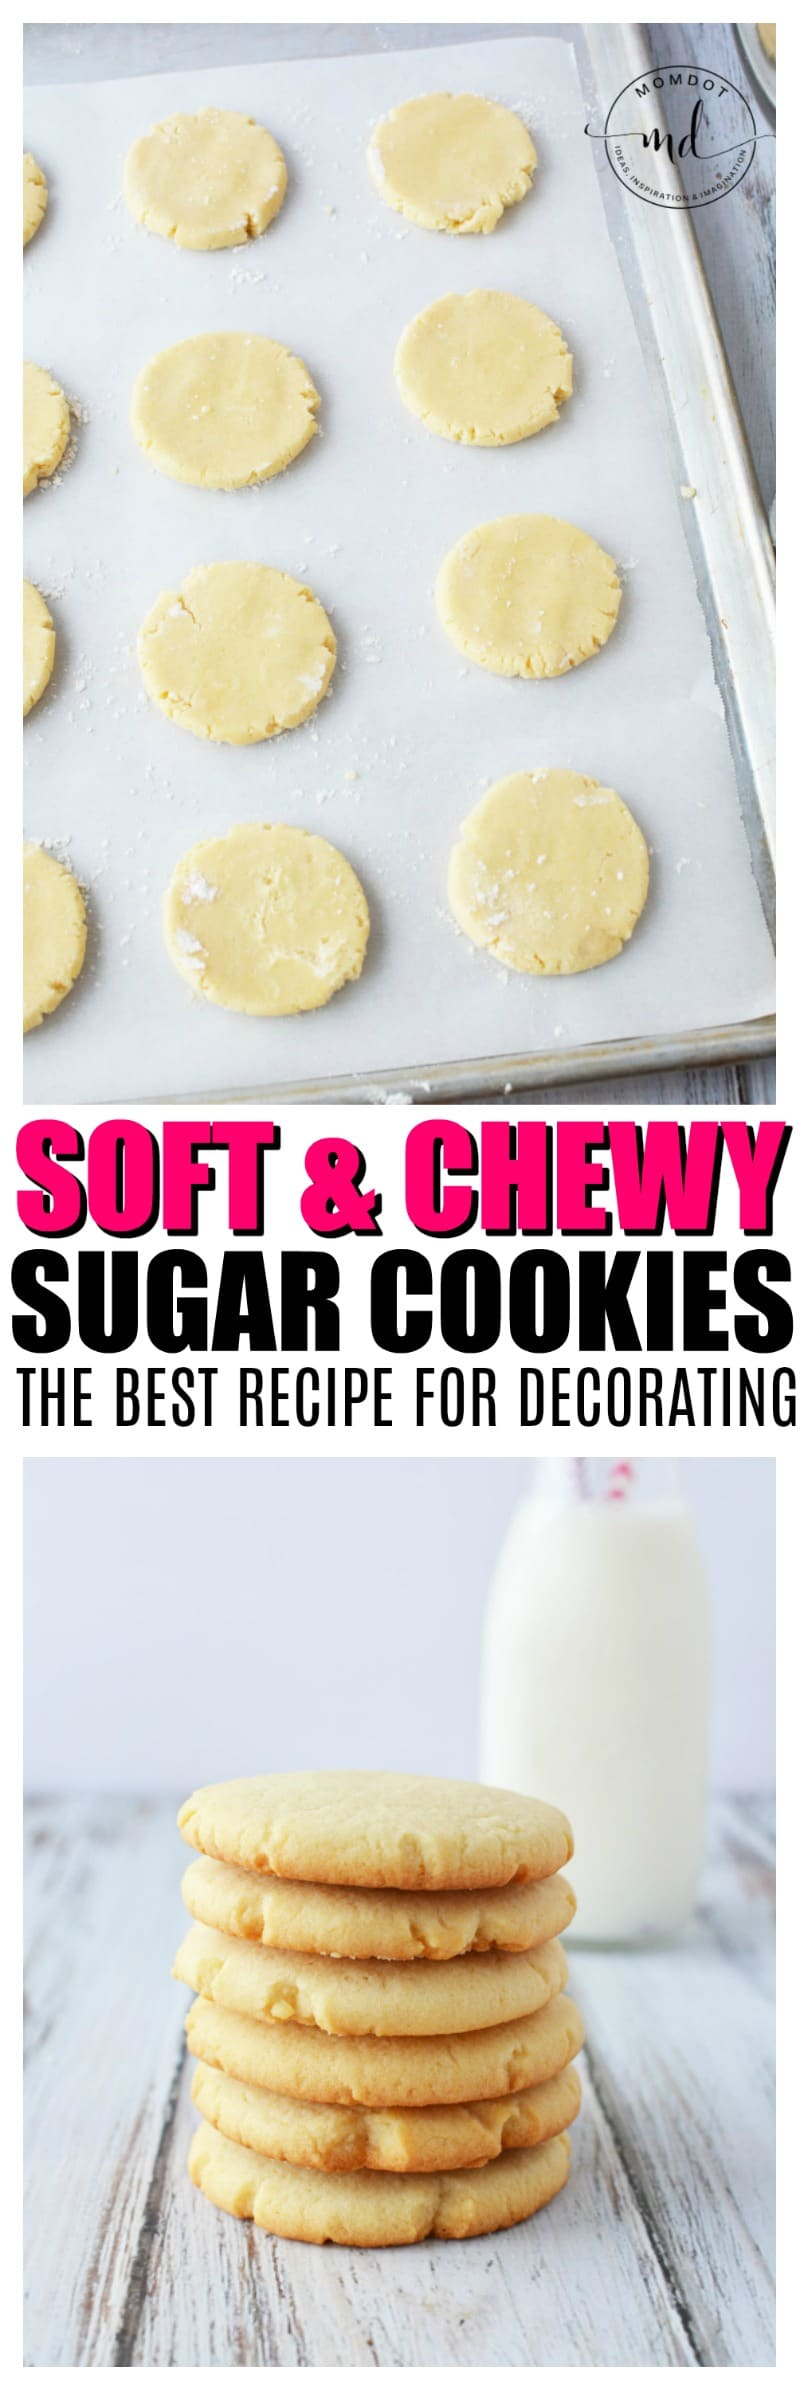 SUGAR COOKIES RECIPE